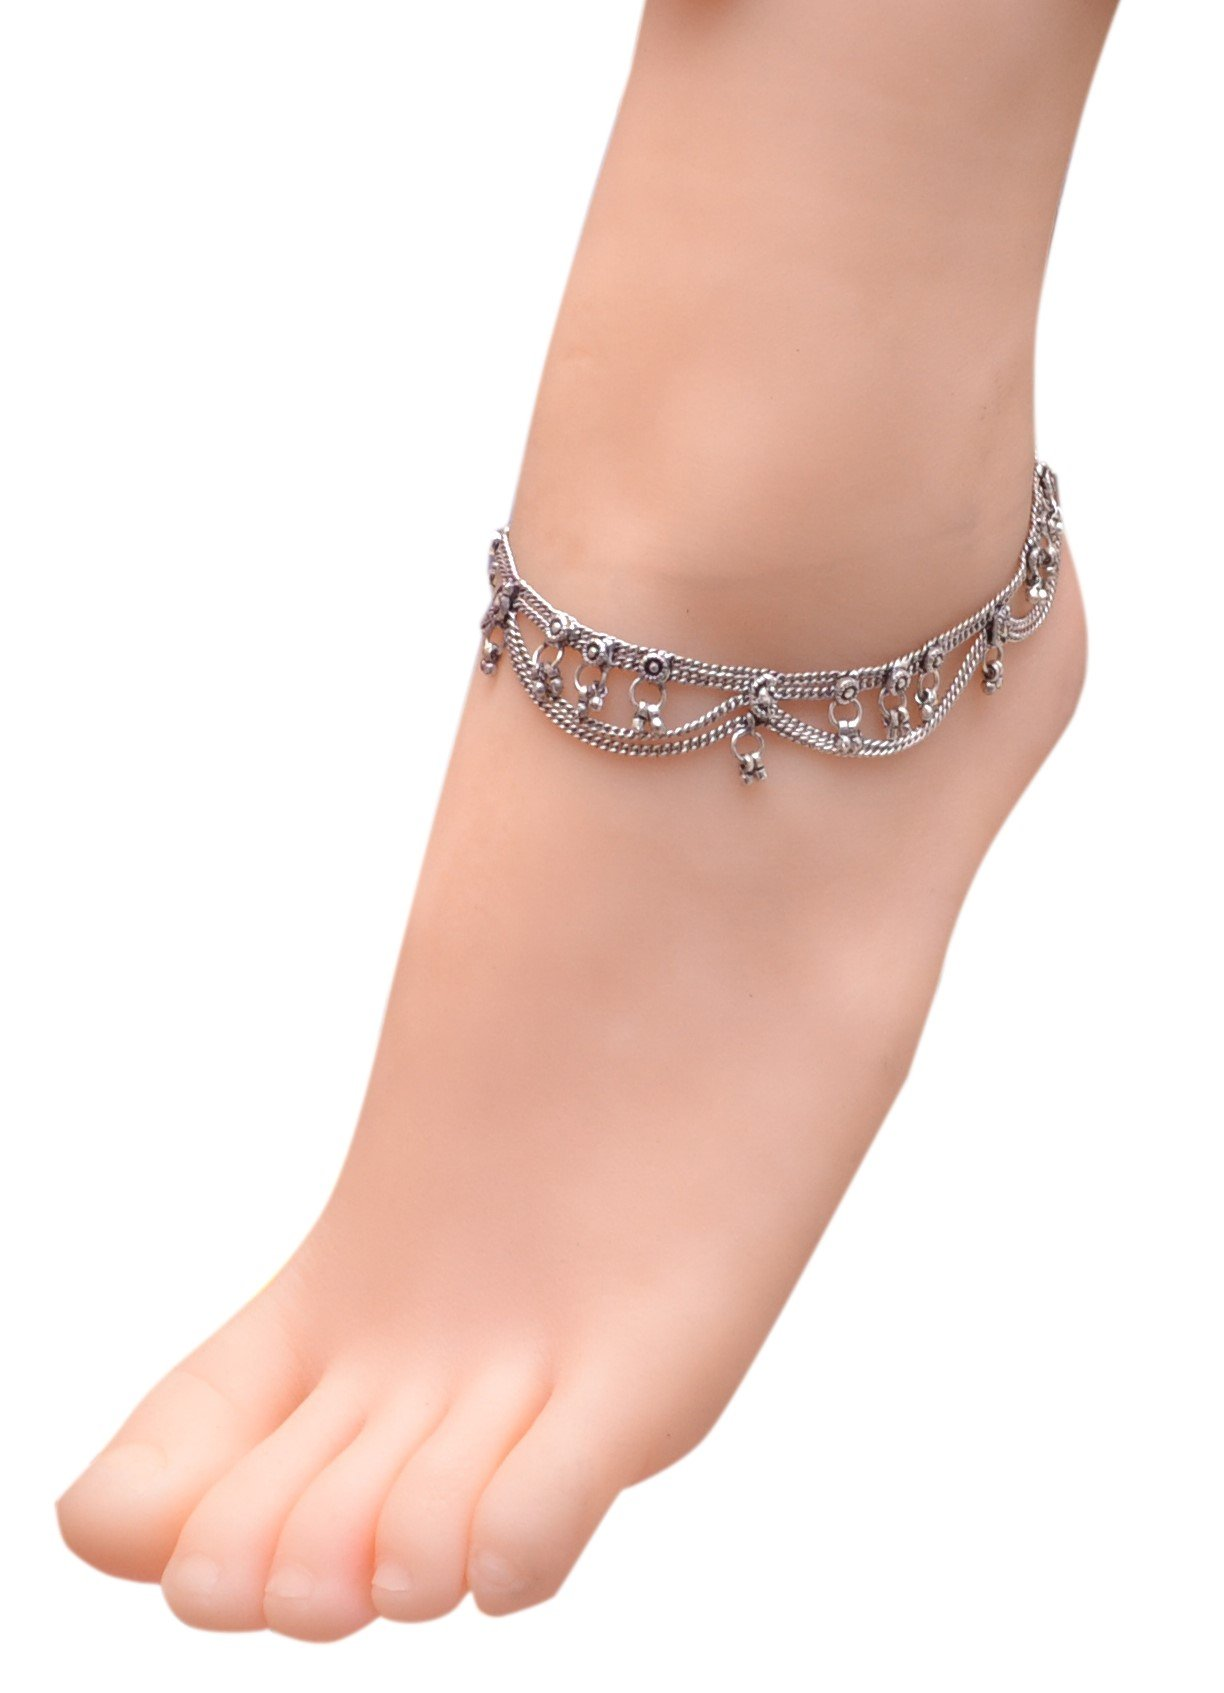 Sansar India Oxidized Two Layer Chain Indian Anklet Jewelry for Girls and Women